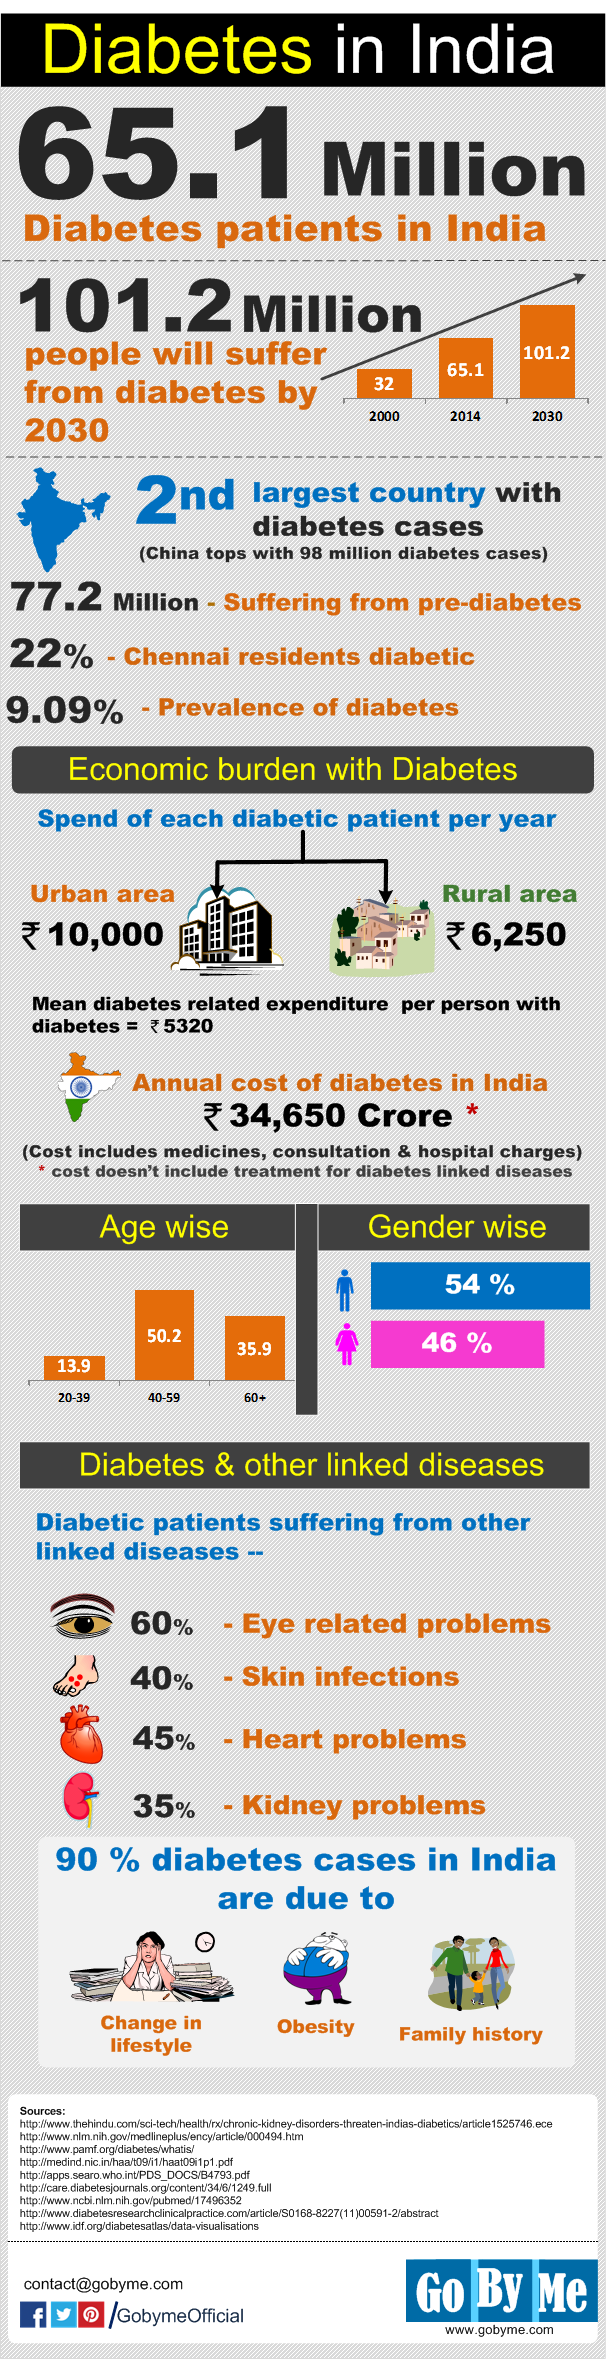 Cost of diabetes in India: Infographic